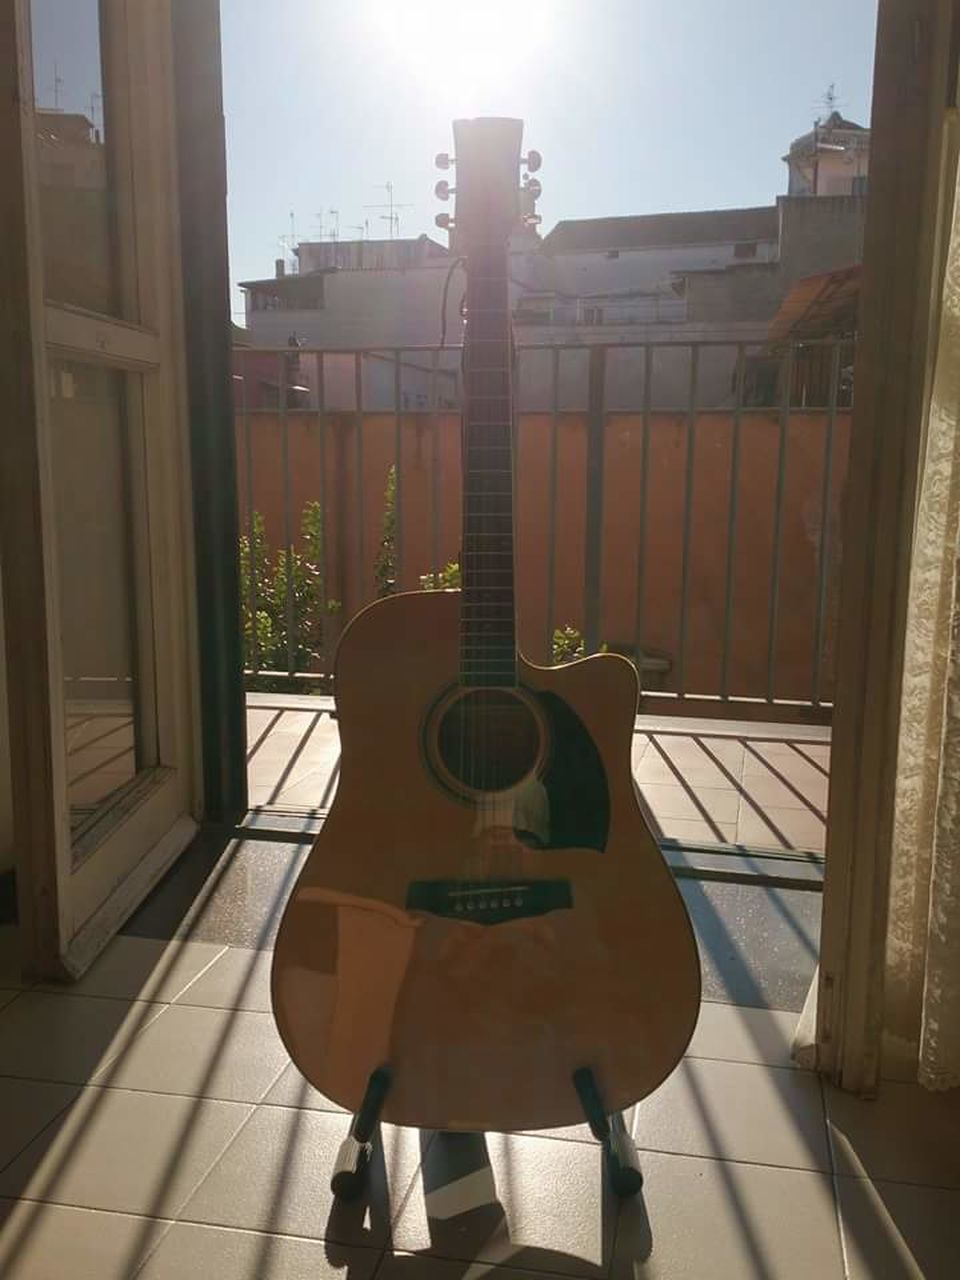 music, guitar, musical instrument, arts culture and entertainment, acoustic guitar, sunlight, day, no people, musical instrument string, architecture, indoors